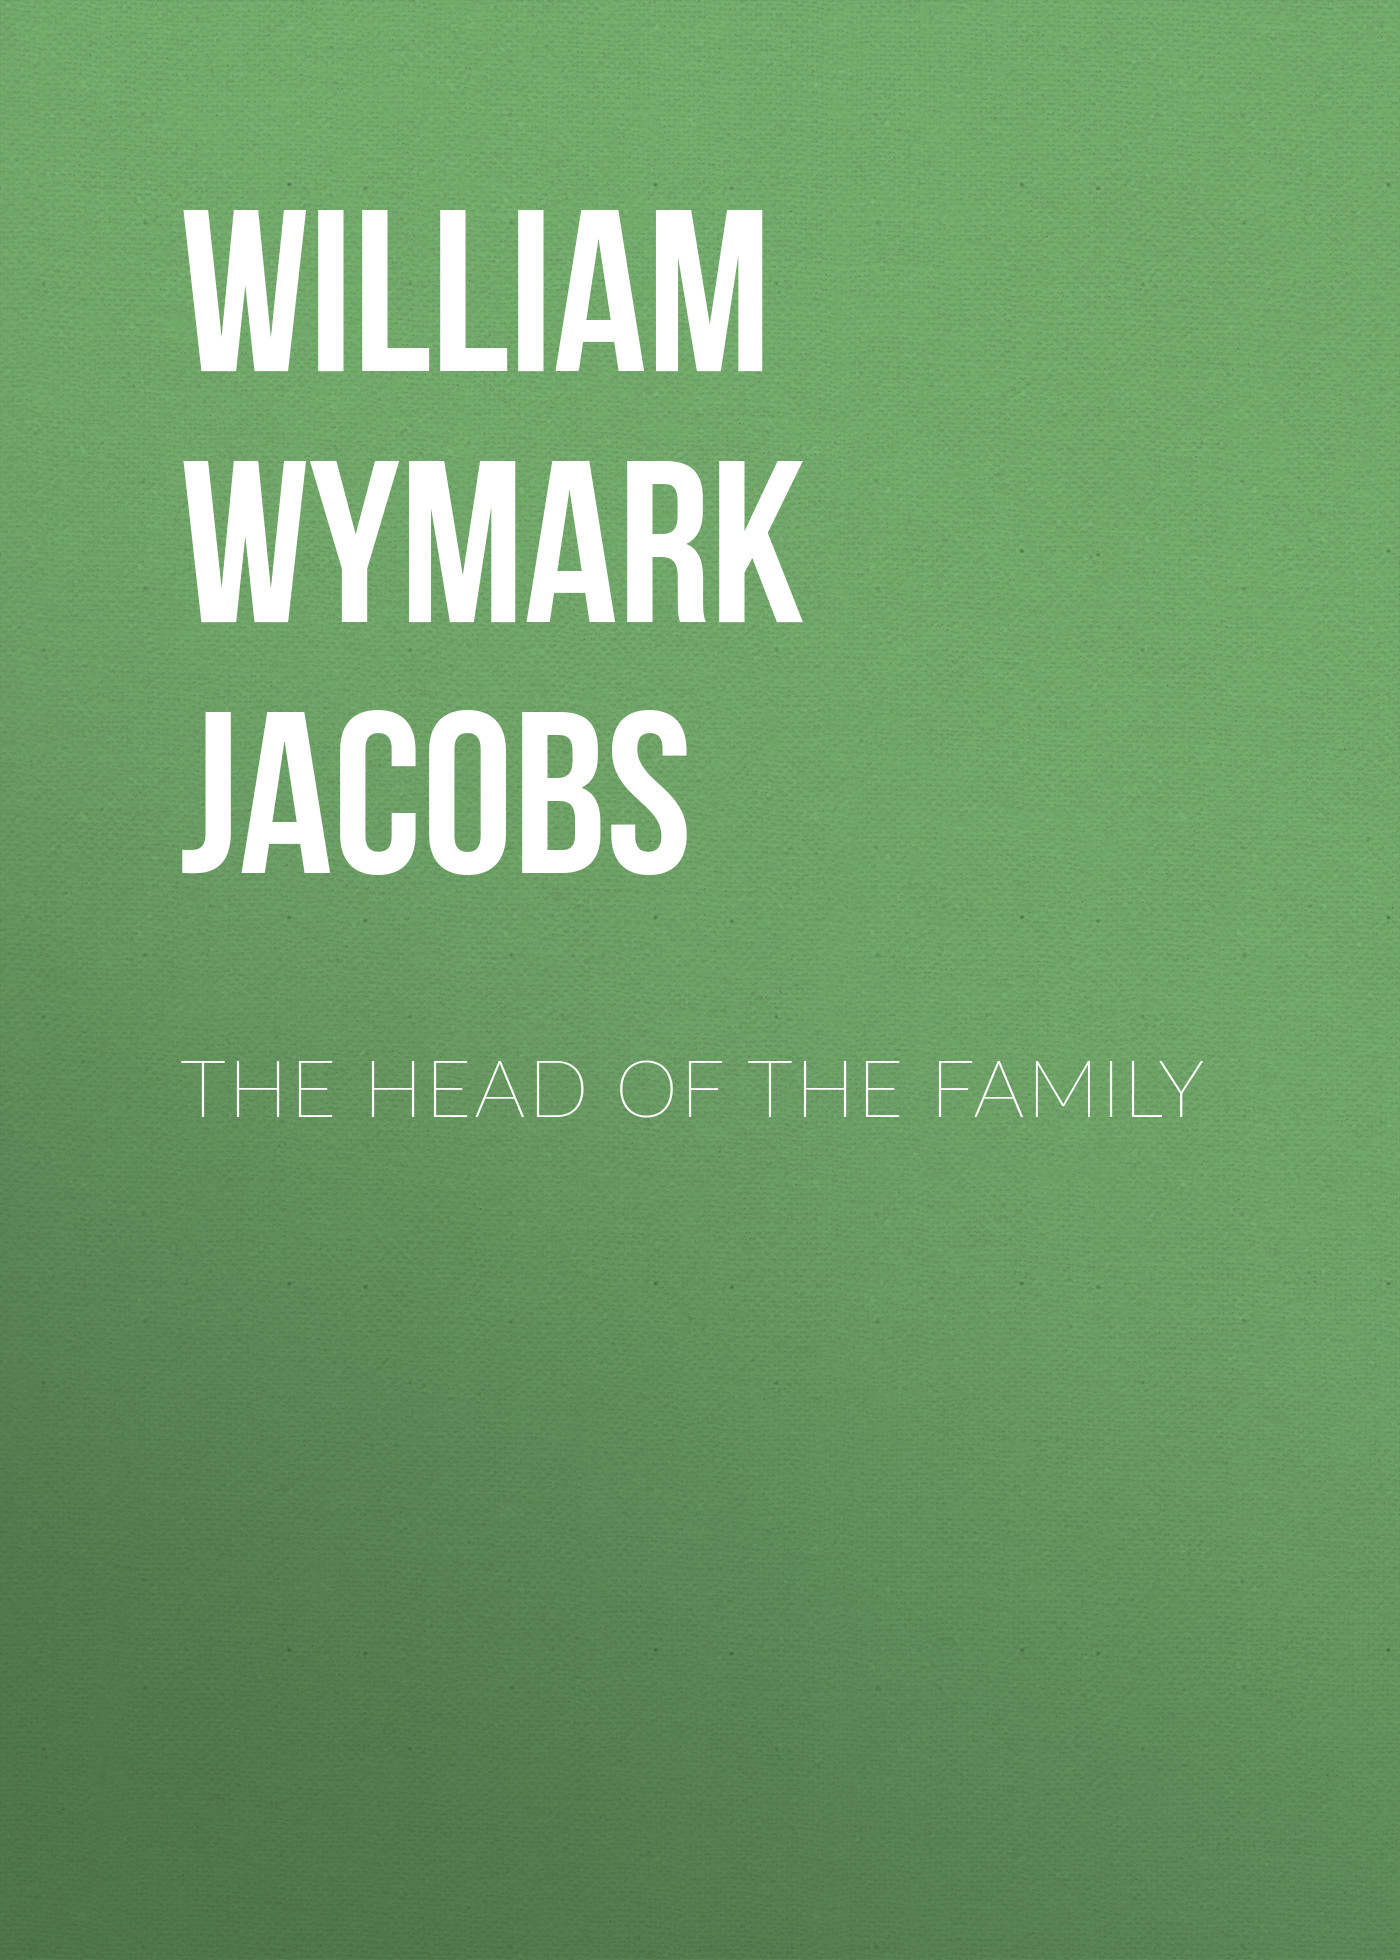 William Wymark Jacobs The Head of the Family